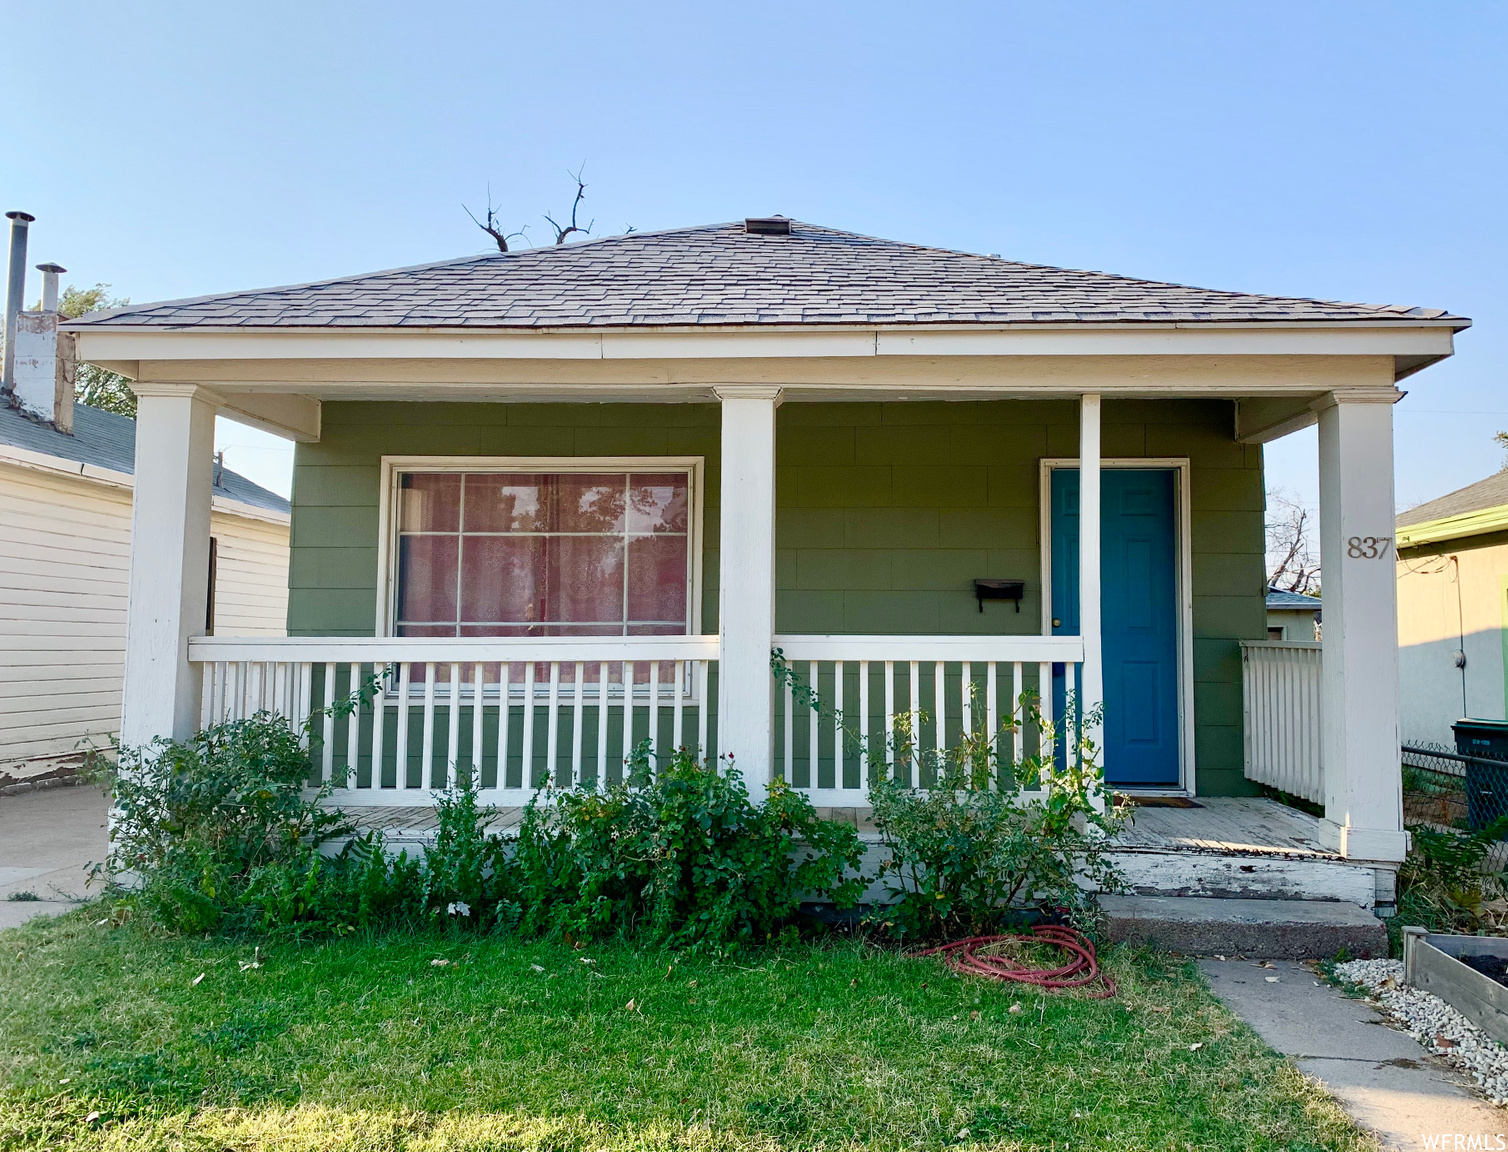 837 E 20TH ST, Ogden UT 84401